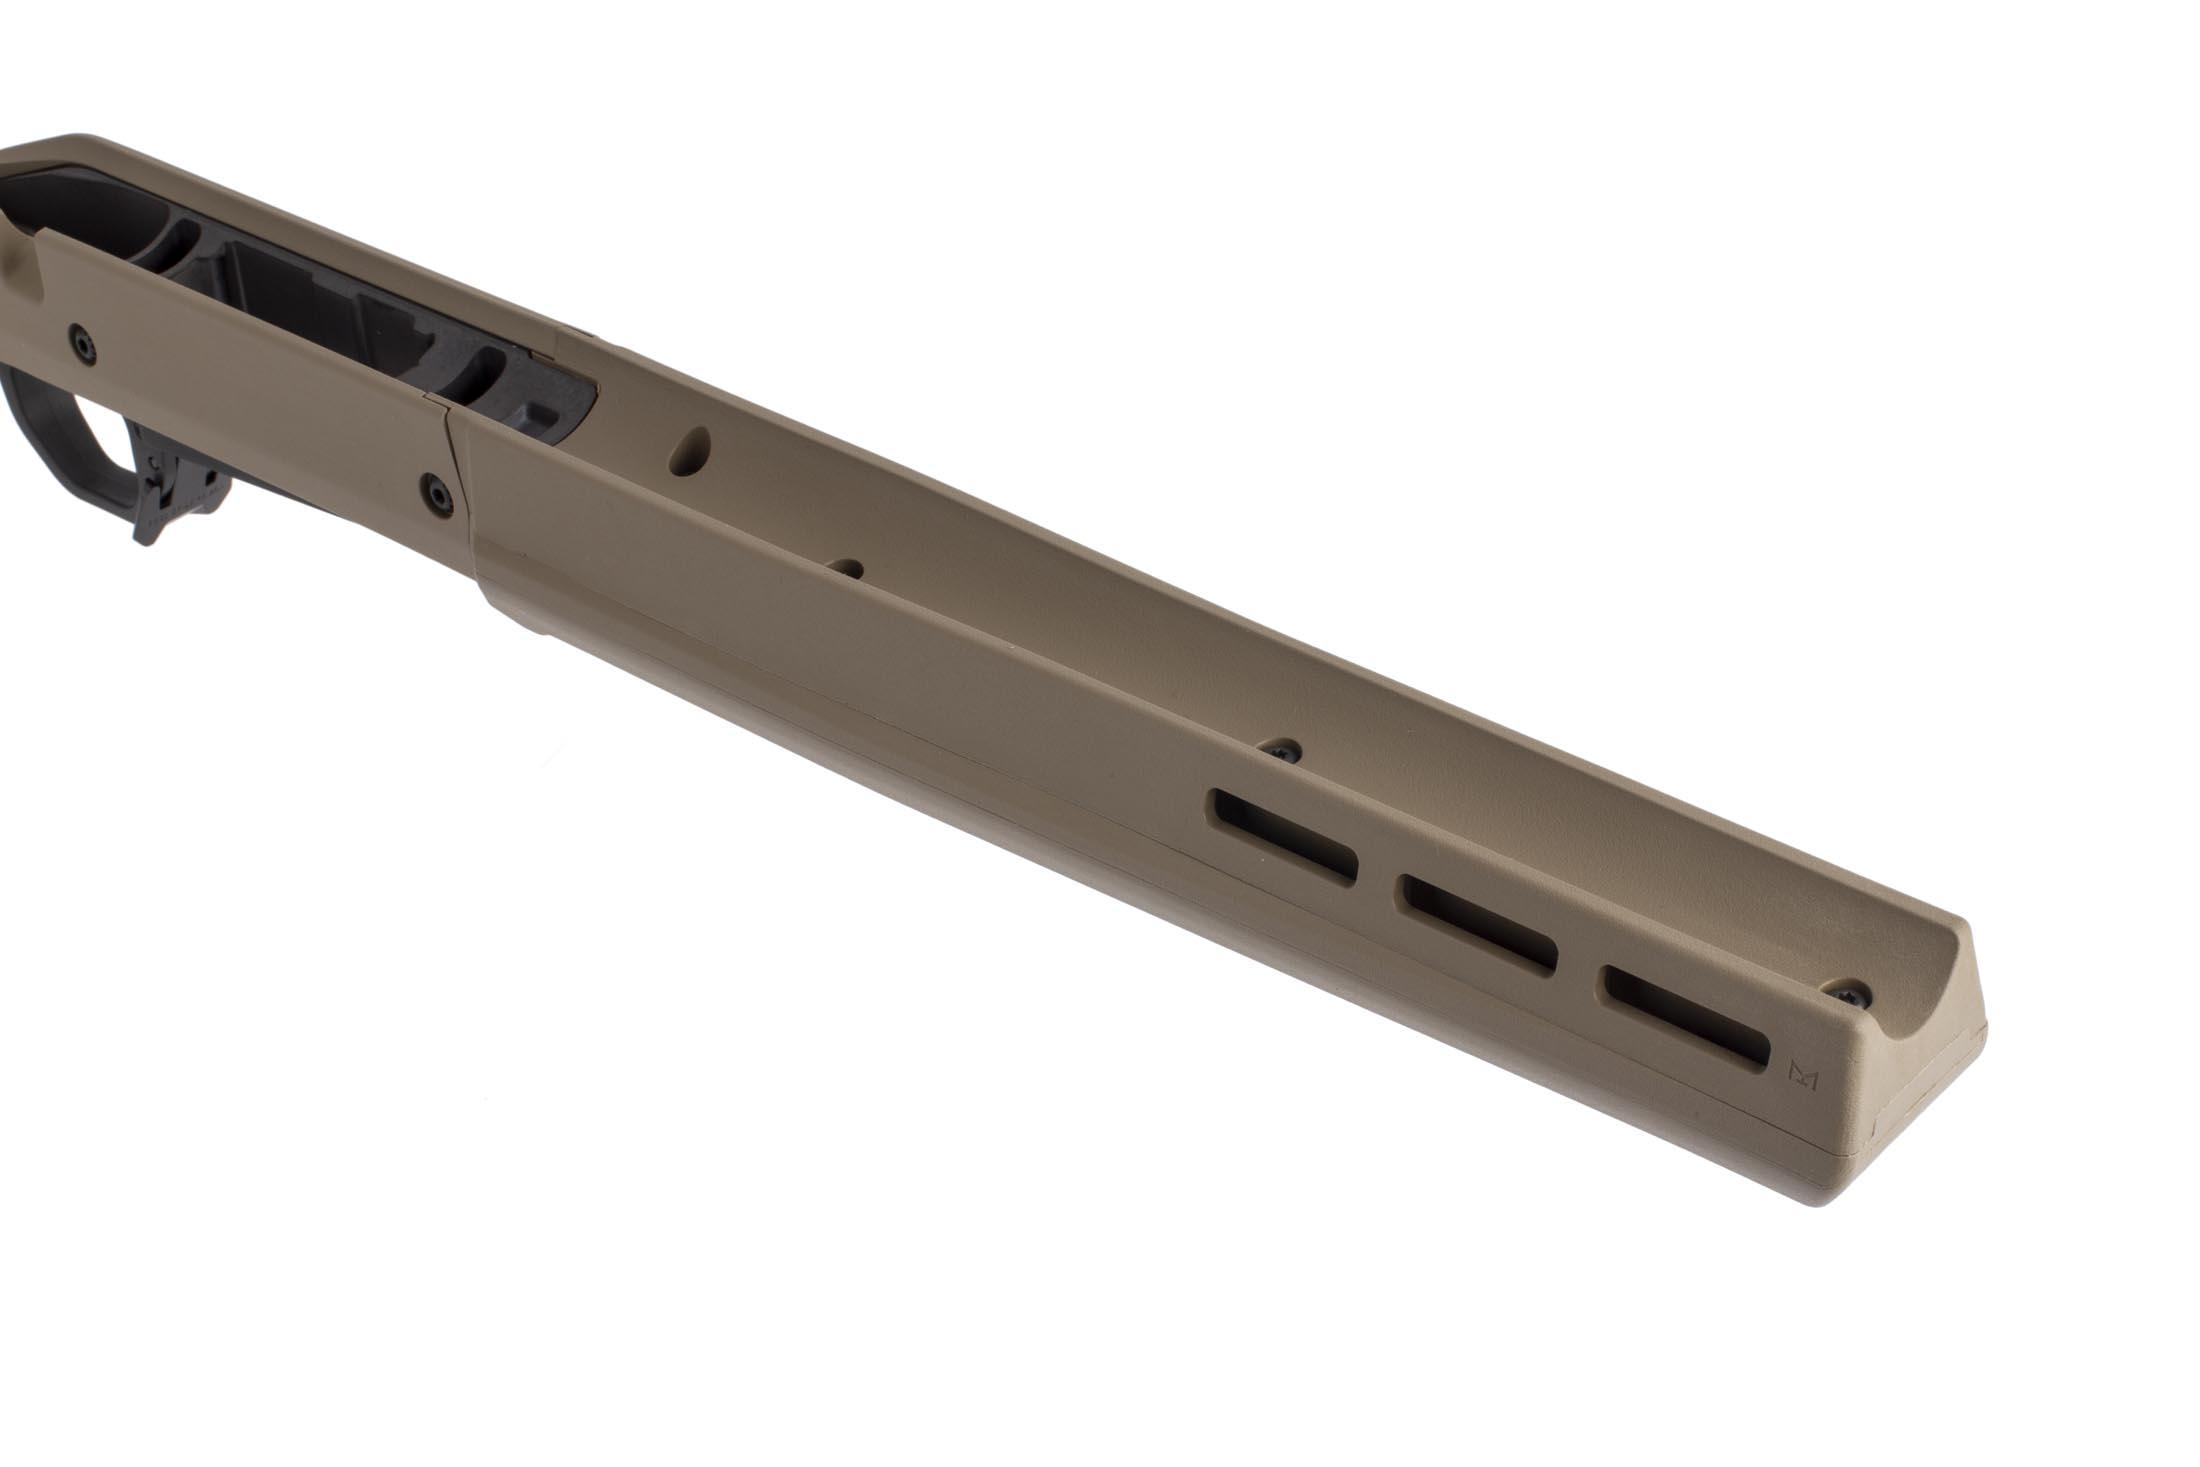 Magpul Hunter stock in flat dark earth for short action Ruger American uses a comfortable wide forend with M-LOK slots